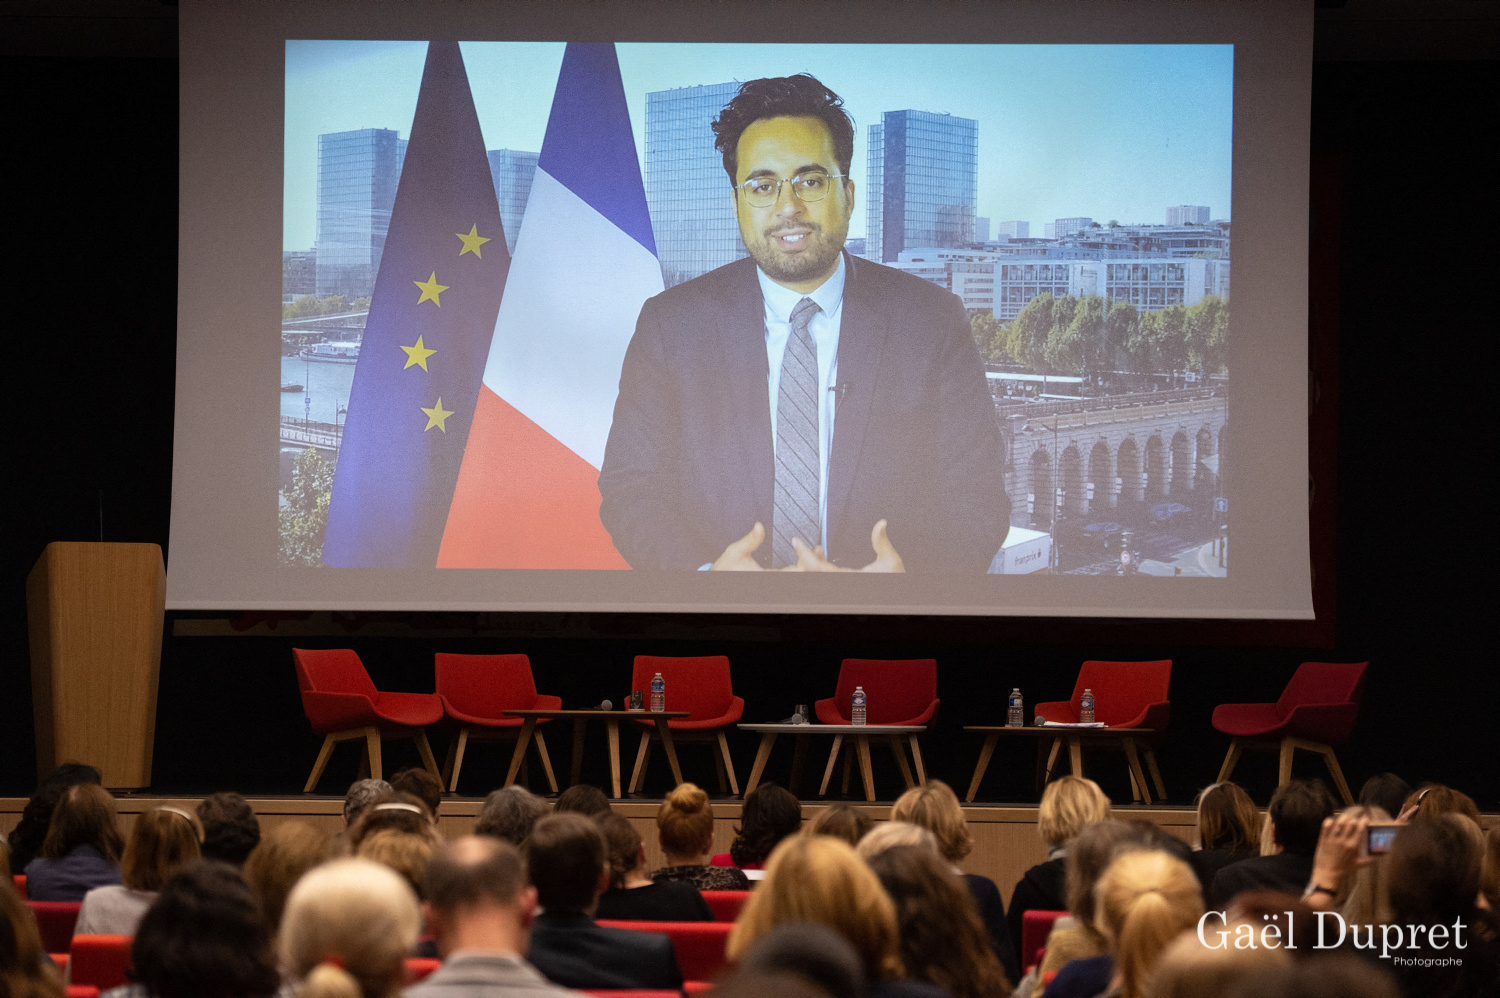 ©Gaël Dupret, France, Paris le 2018-11-15 : 2ème édition des WINDAY Paris par FBA - Femmes Business Angels. Photo : Message vidéo de Mounir Mahjoubi, Secrétaire d'État auprès du ministre de l'Économie et des Finances et du ministre de l'Action et des Comptes publics, chargé du Numérique.  Video message of Mounir Mahjoubi, Secretary of State to the Minister of Economy and Finance and Minister of Action and Public Accounts, in charge of Digital.